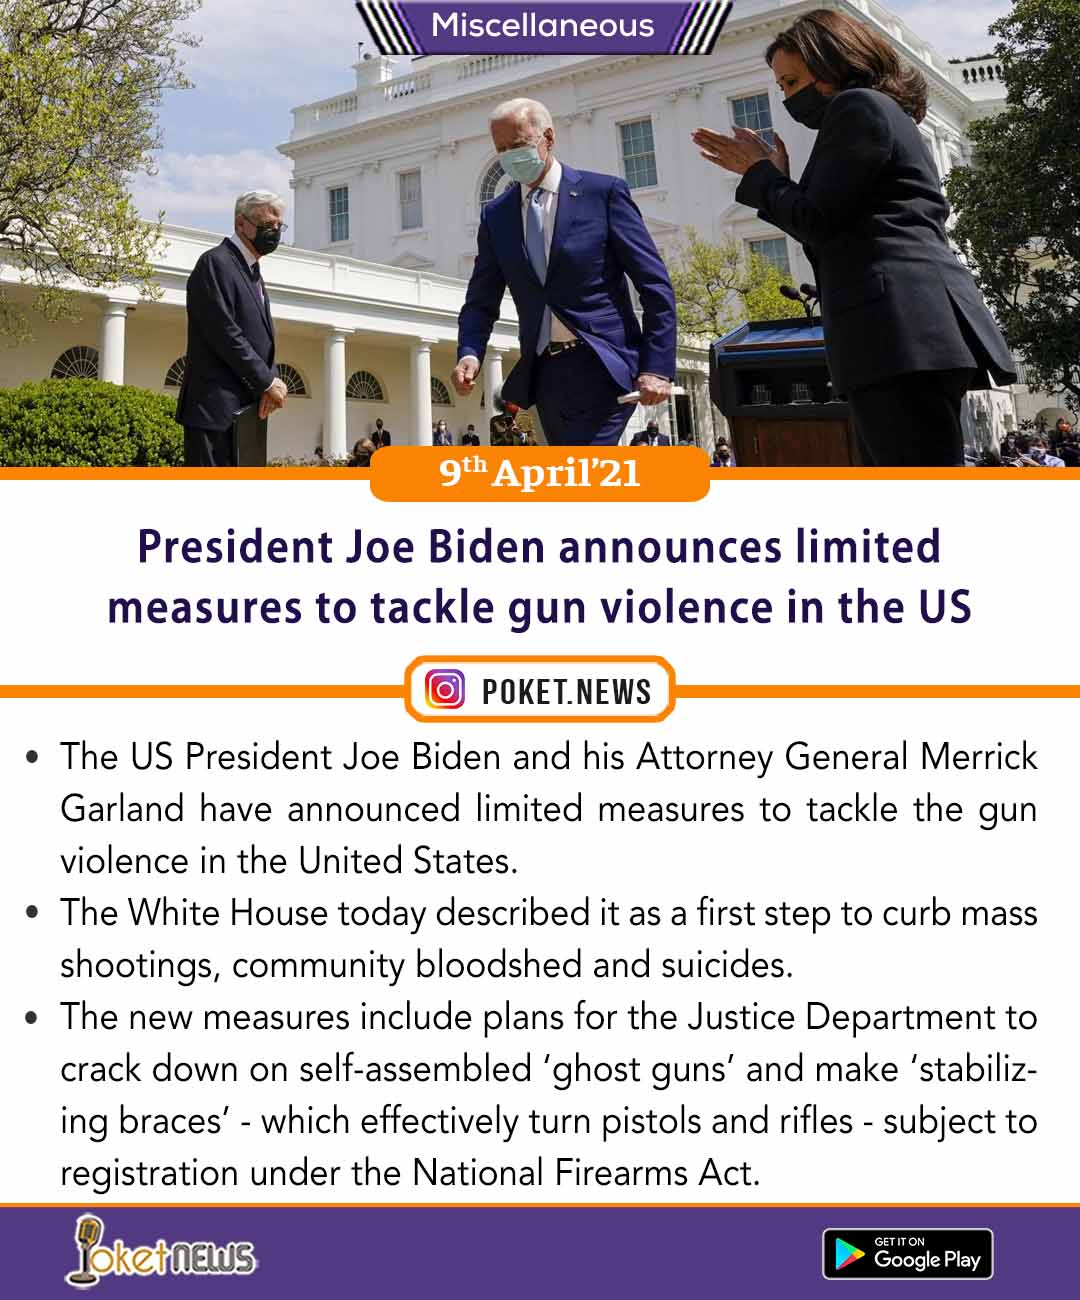 President Joe Biden announces limited measures to tackle gun violence in the US